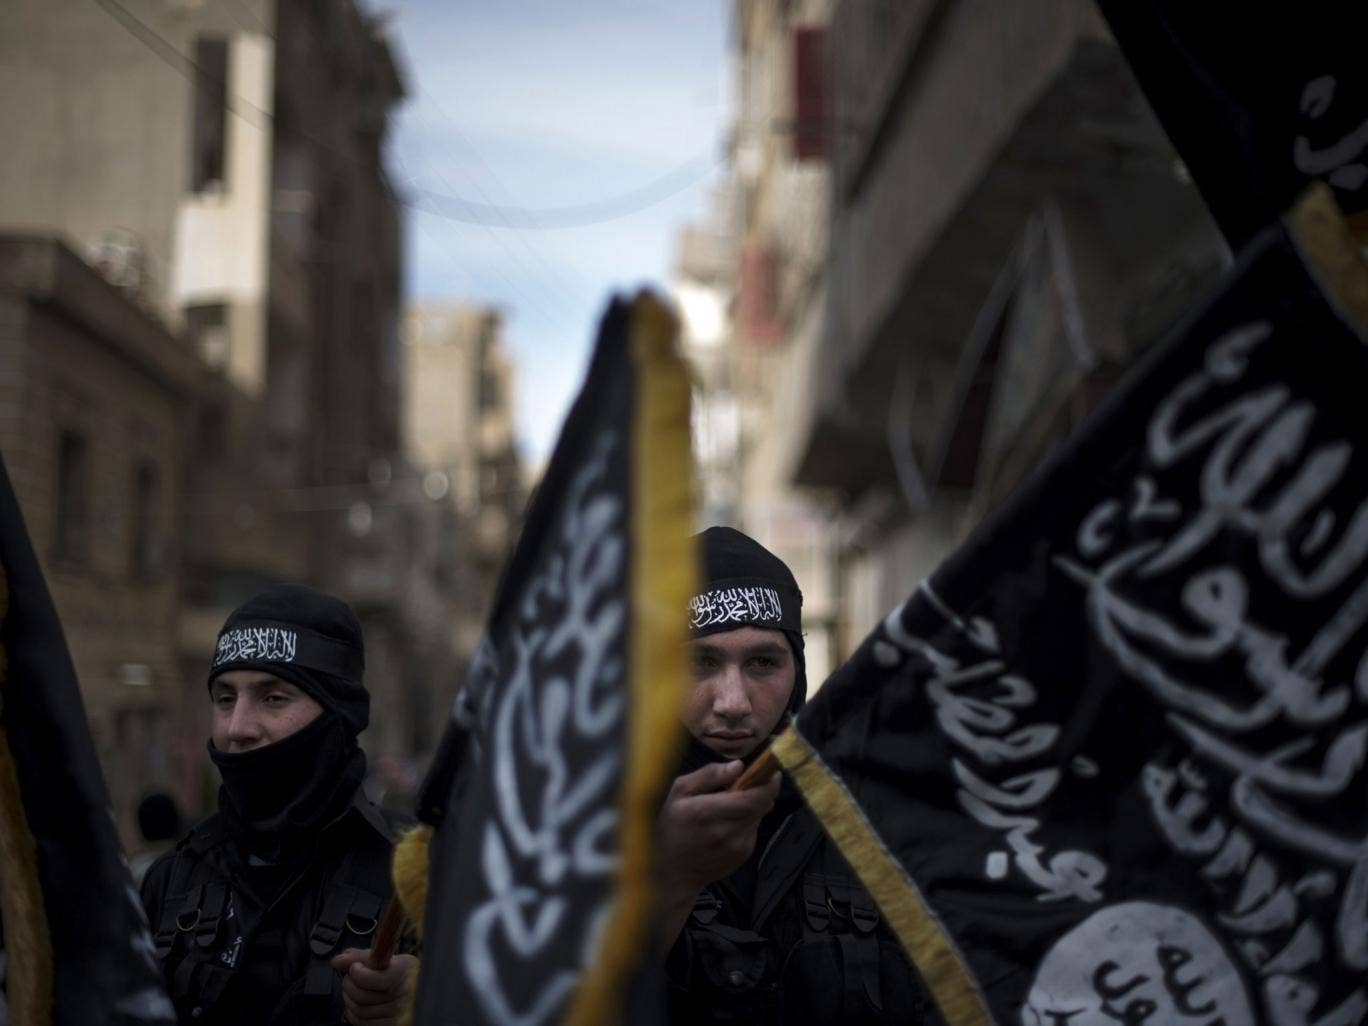 Members of the Islamist Liwa (brigade) Hamzah hold flags of Jebhat al-Nusra at a rally in Deir Ezzor earlier this year